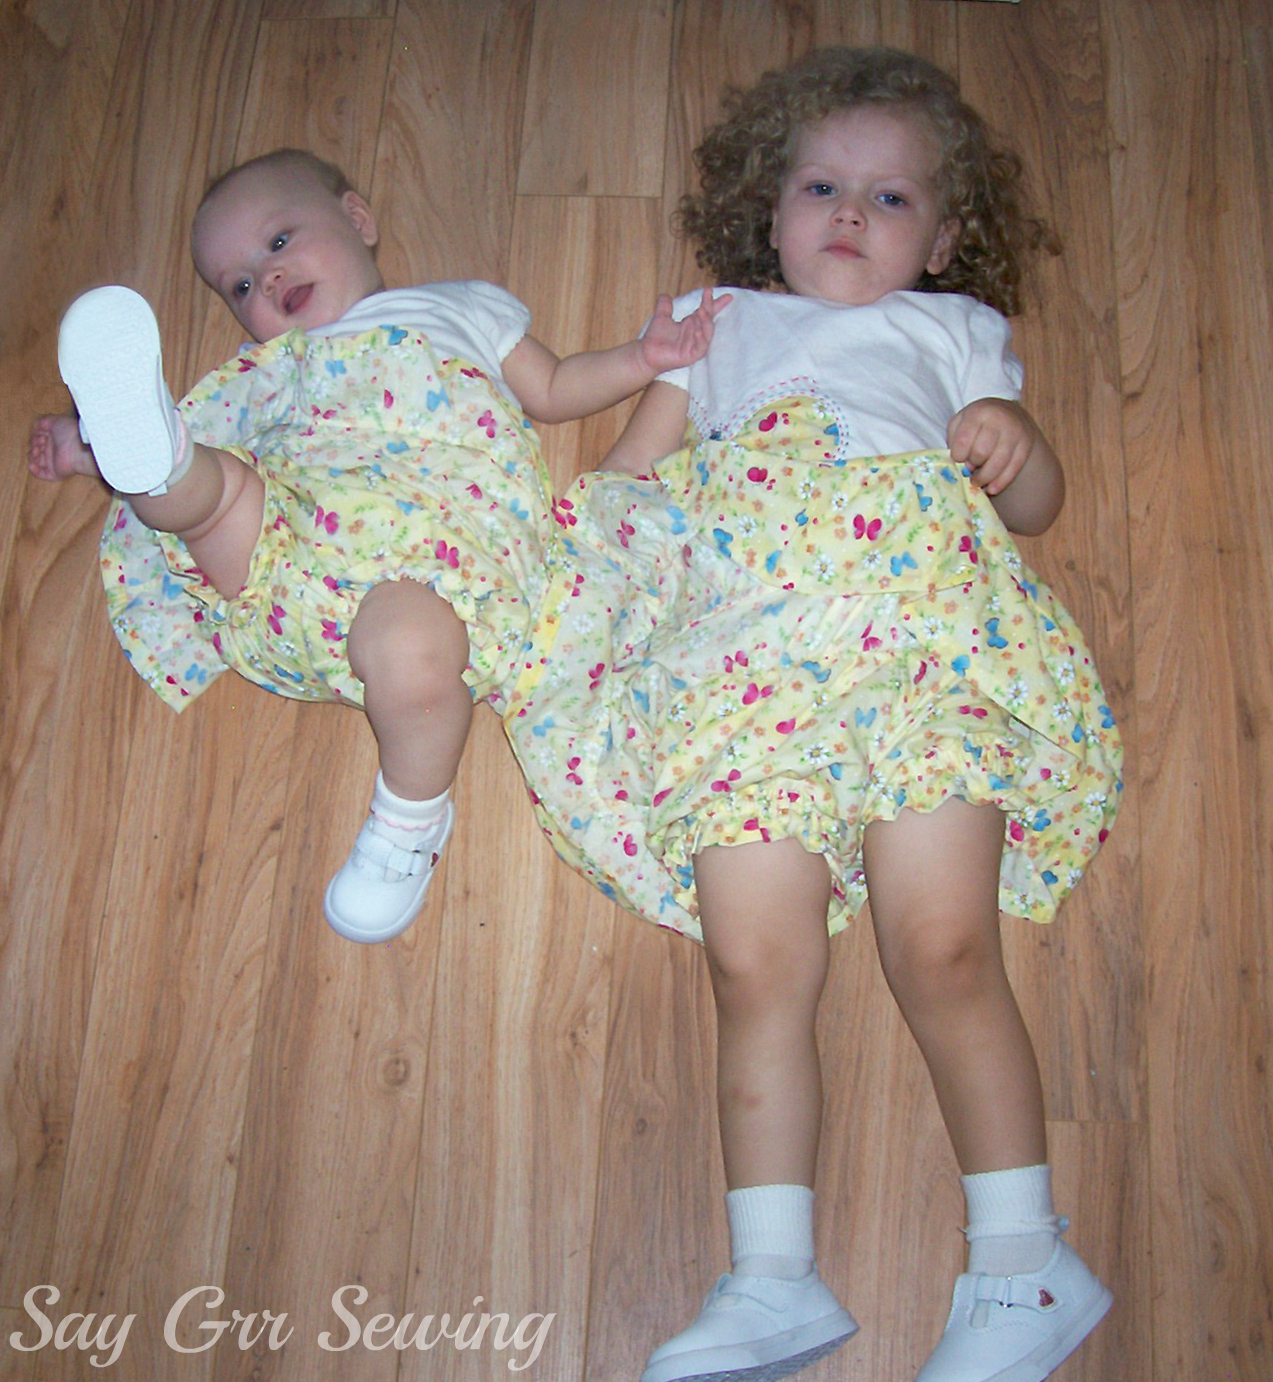 girls in diapers